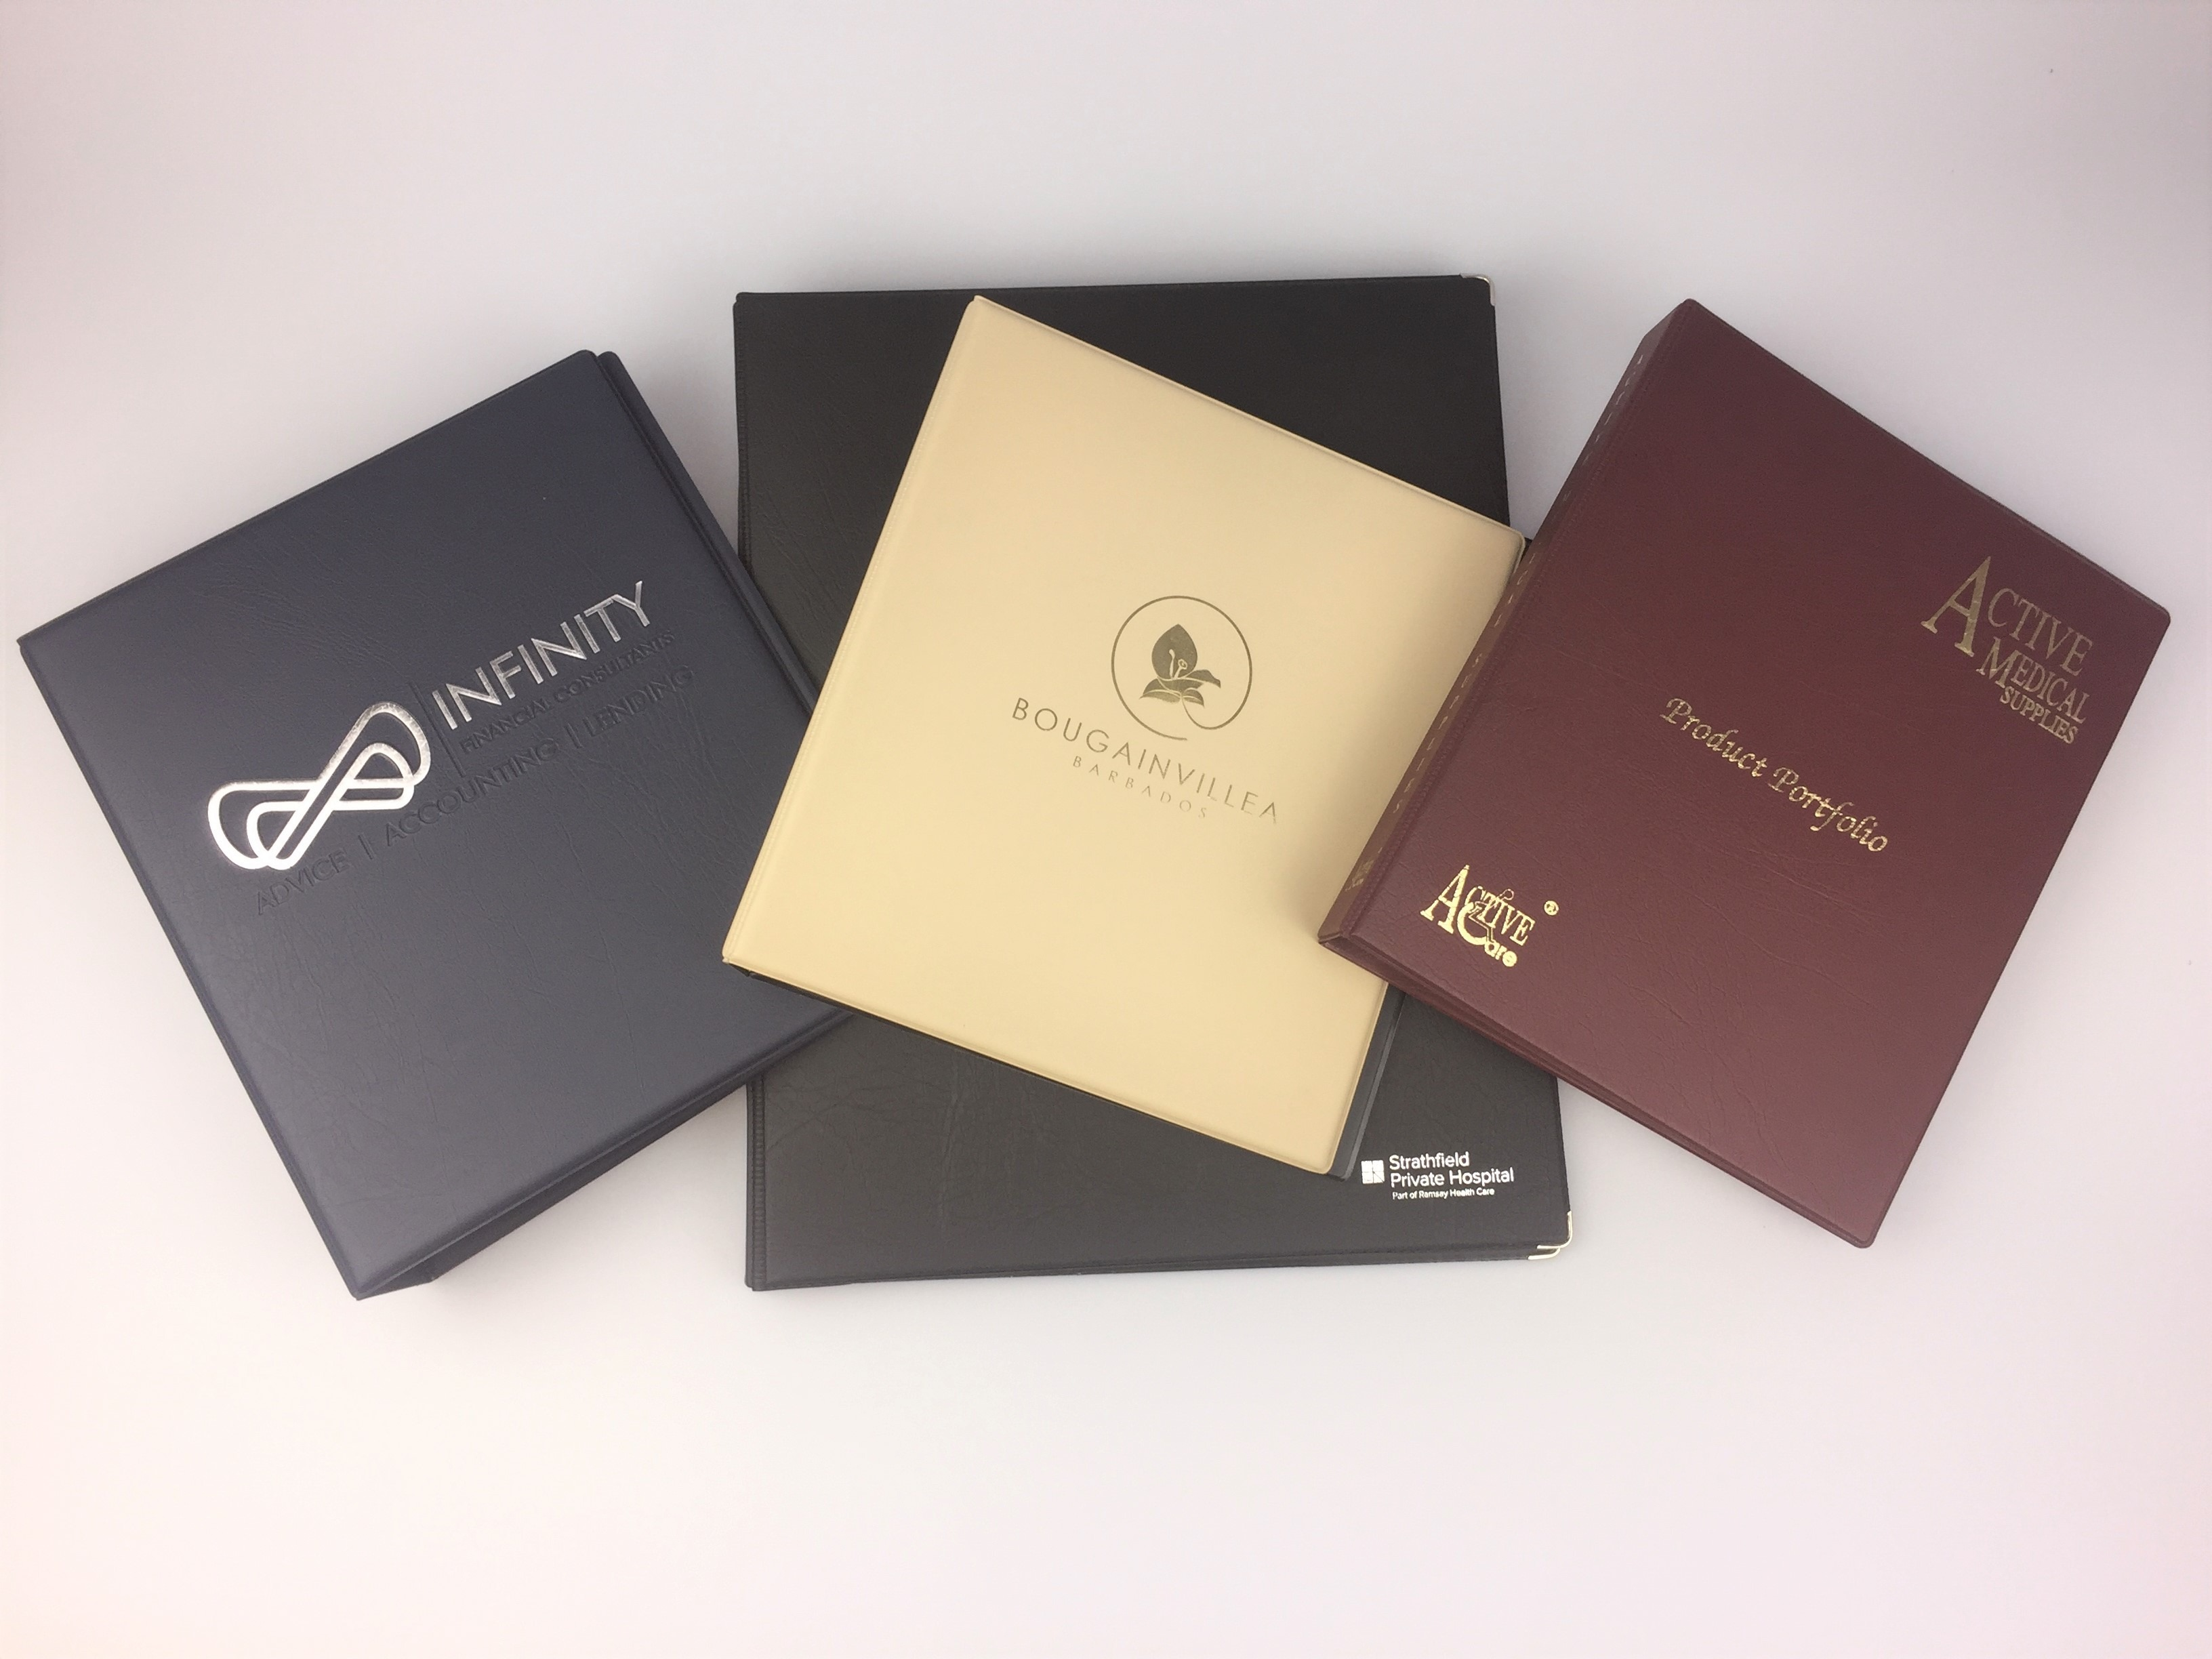 Corporate Branding Specialist Plastics Unique makes a wide range of branded stationery including these ring binders in a wide range of colours, fabrics. and prints